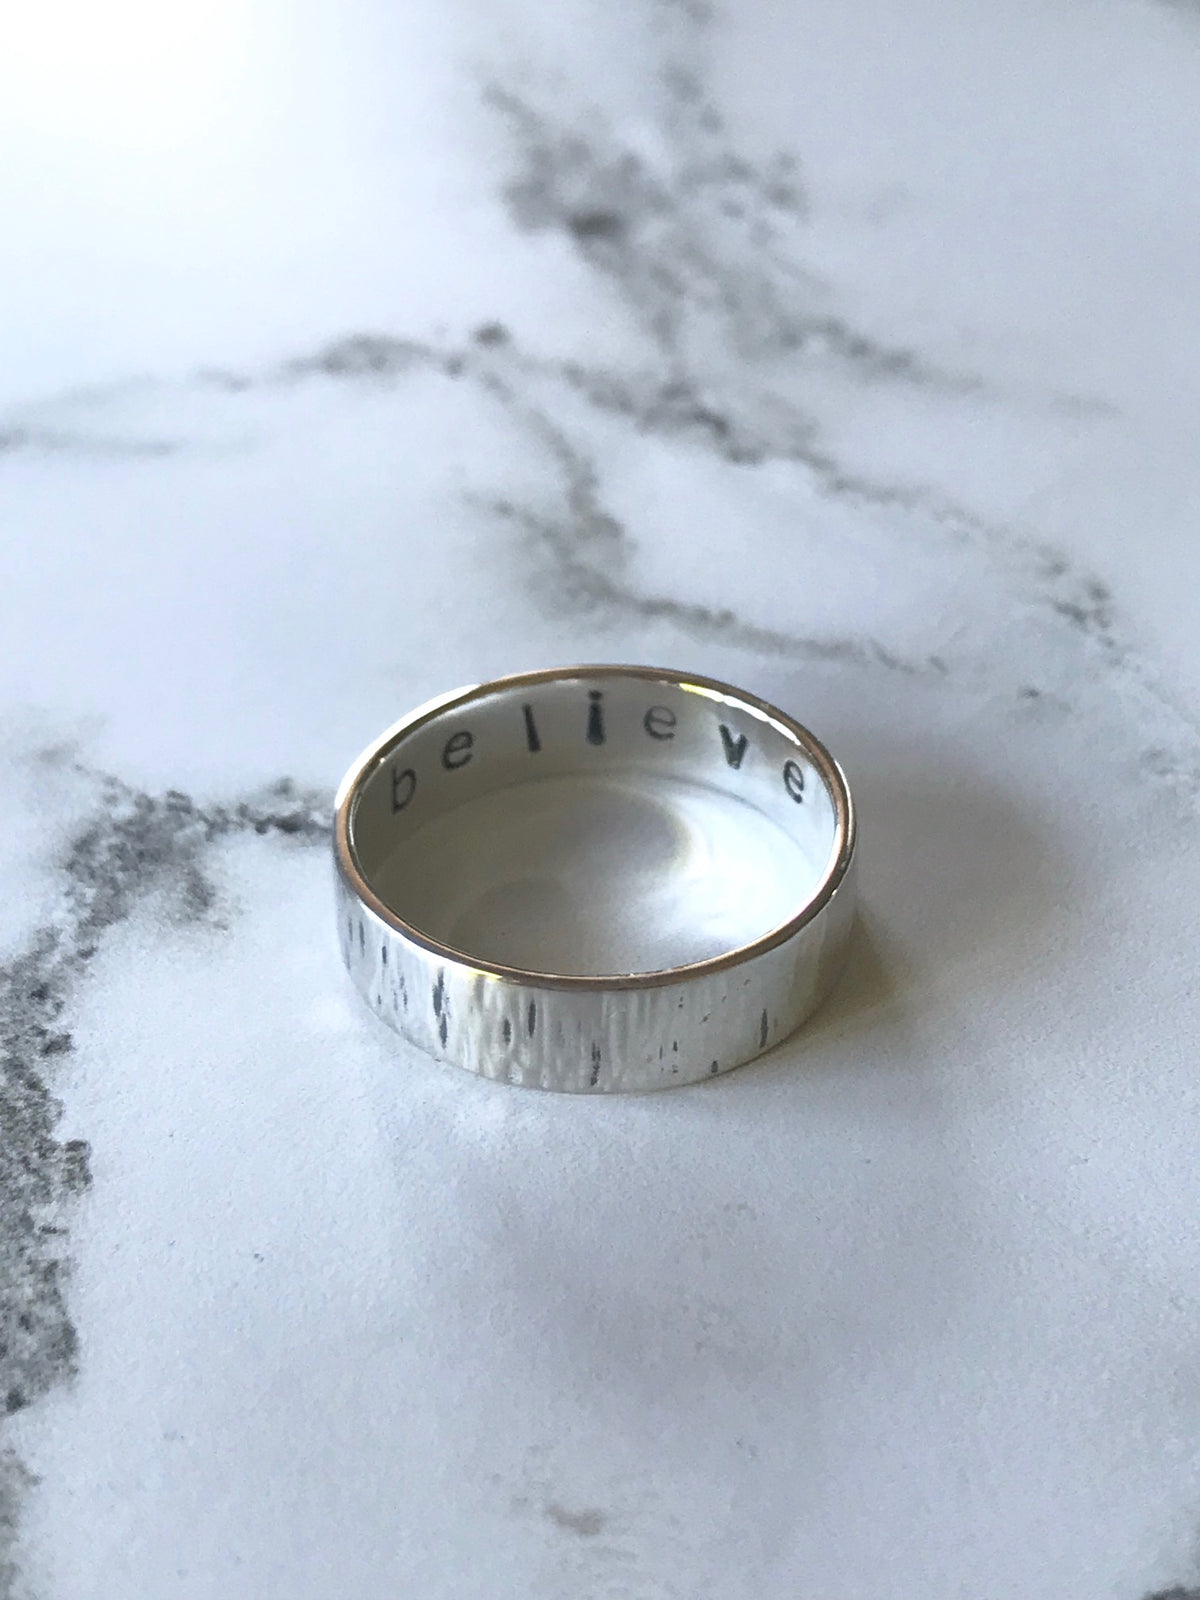 Empowering silver ring with striped texture